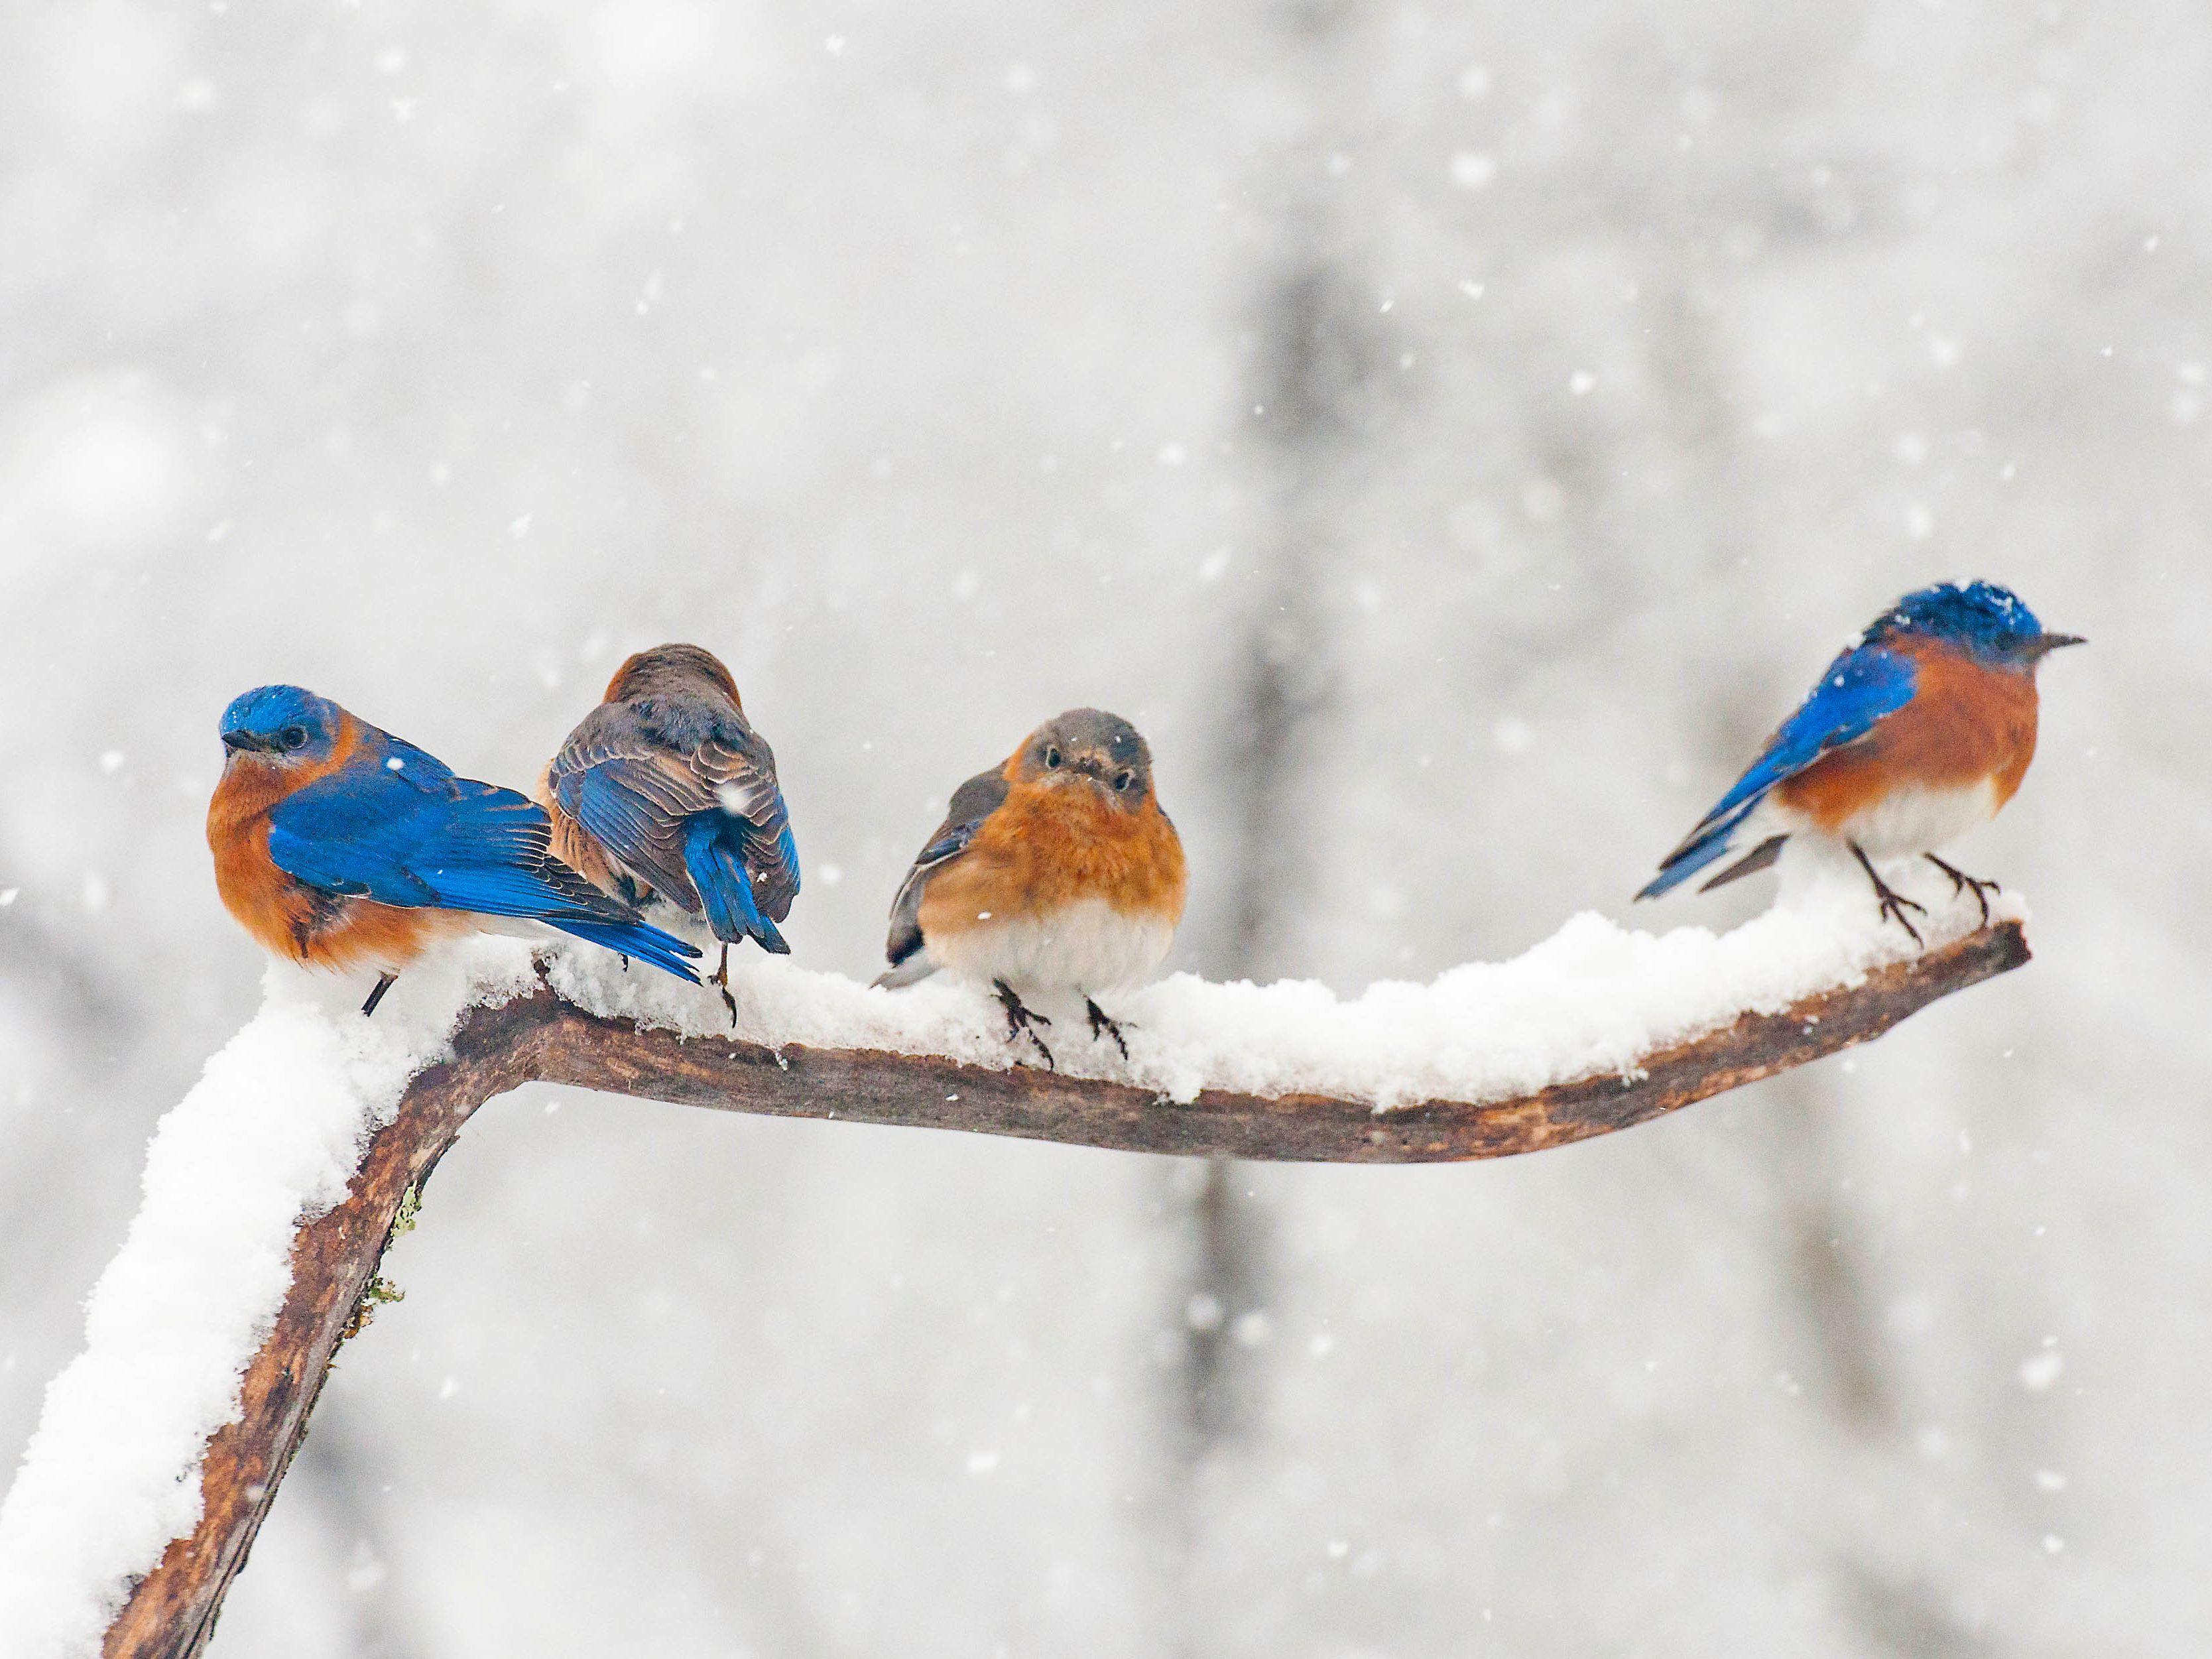 bluebirds-on-snowy-branch-538973107-59de75100d327a00119e3bed